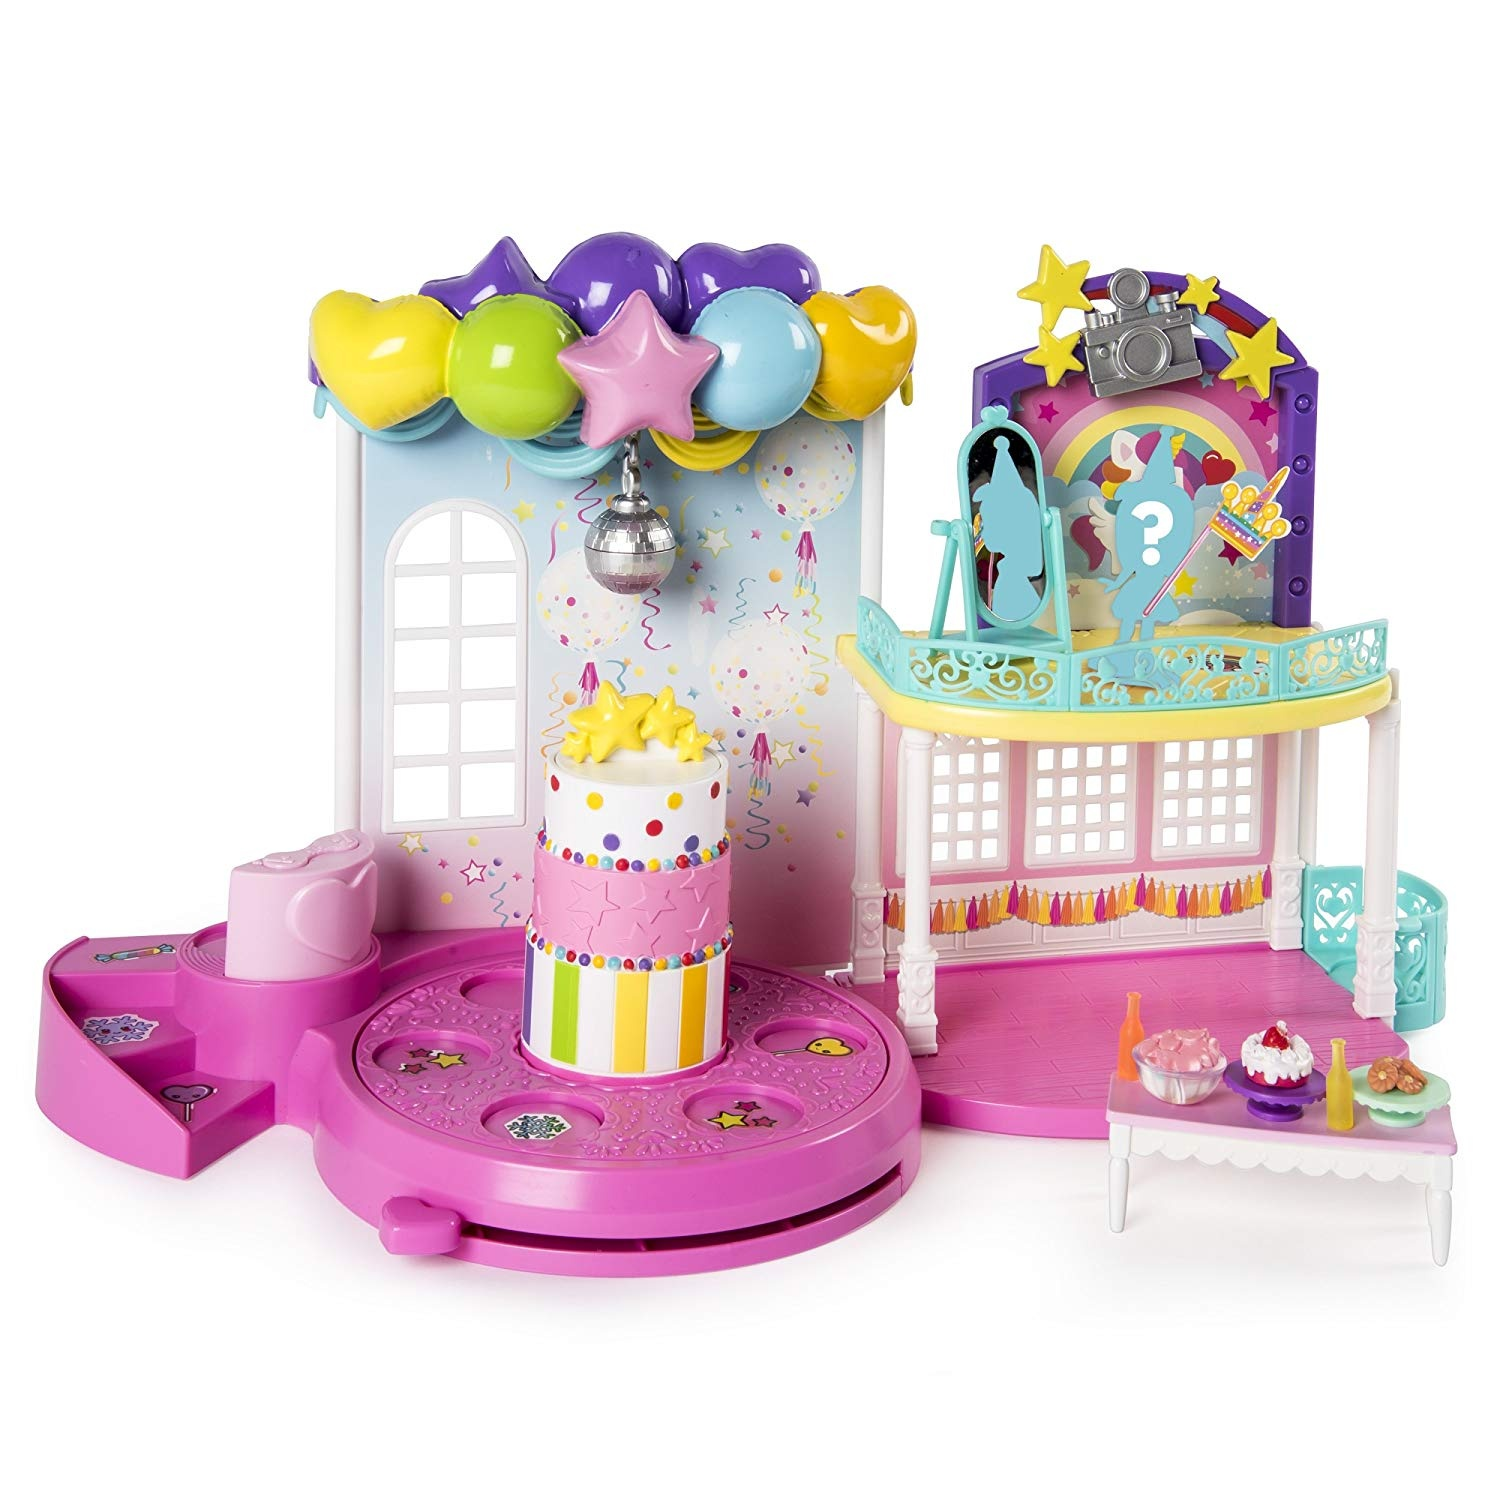 Party Popteenies Exclusive Collectible Mini Doll and Accessories Poptastic Party Playset with Confetti for Ages 4 and Up